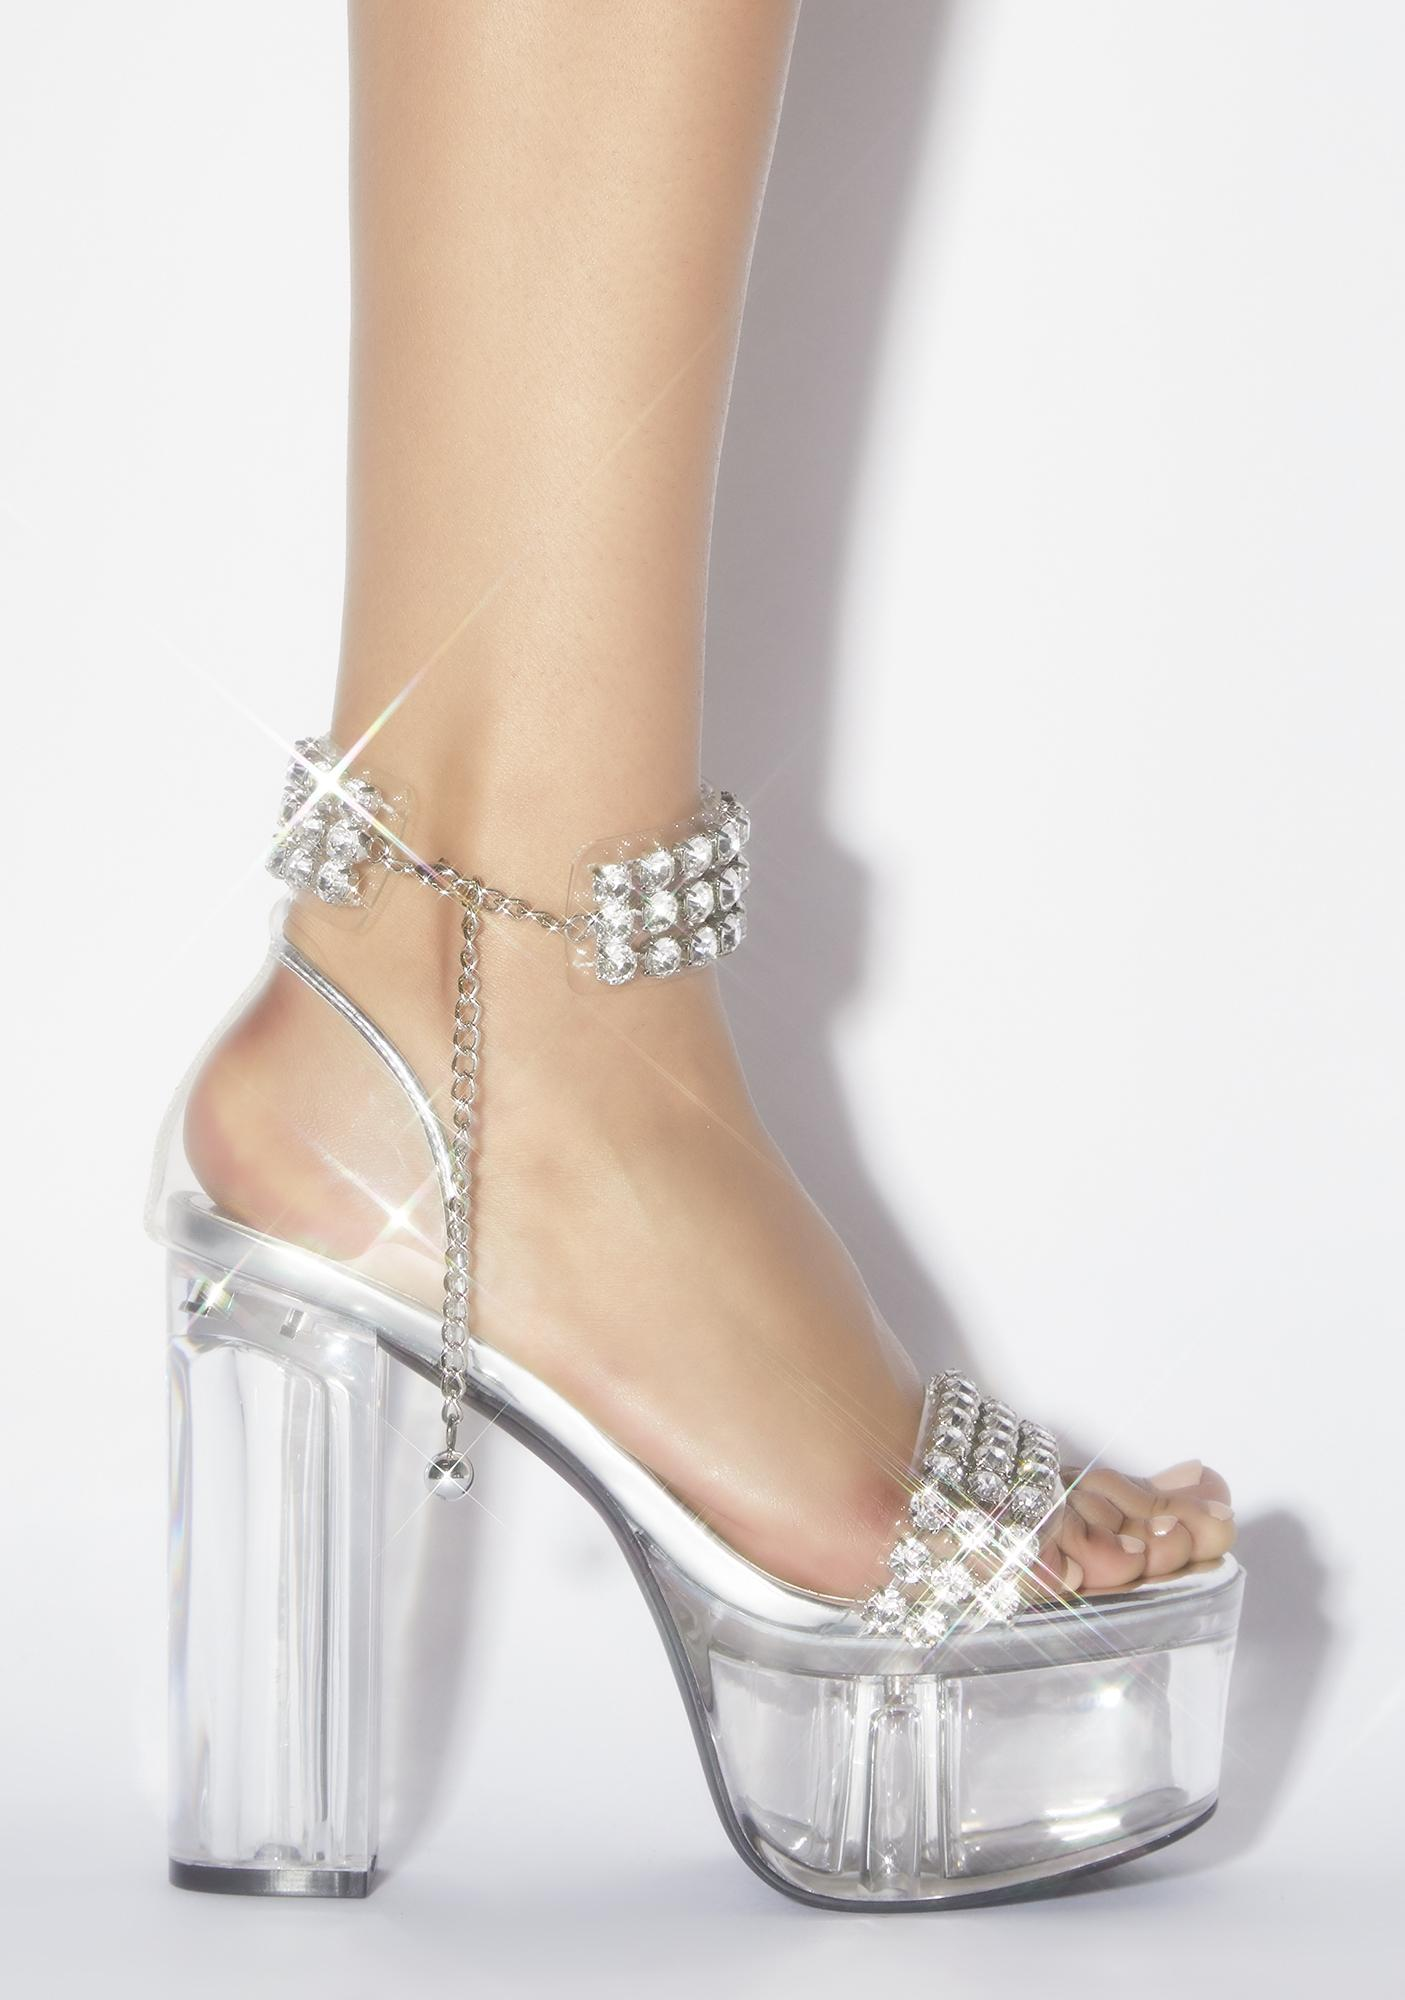 Sugar Thrillz Let 'Em Talk Platform Heels